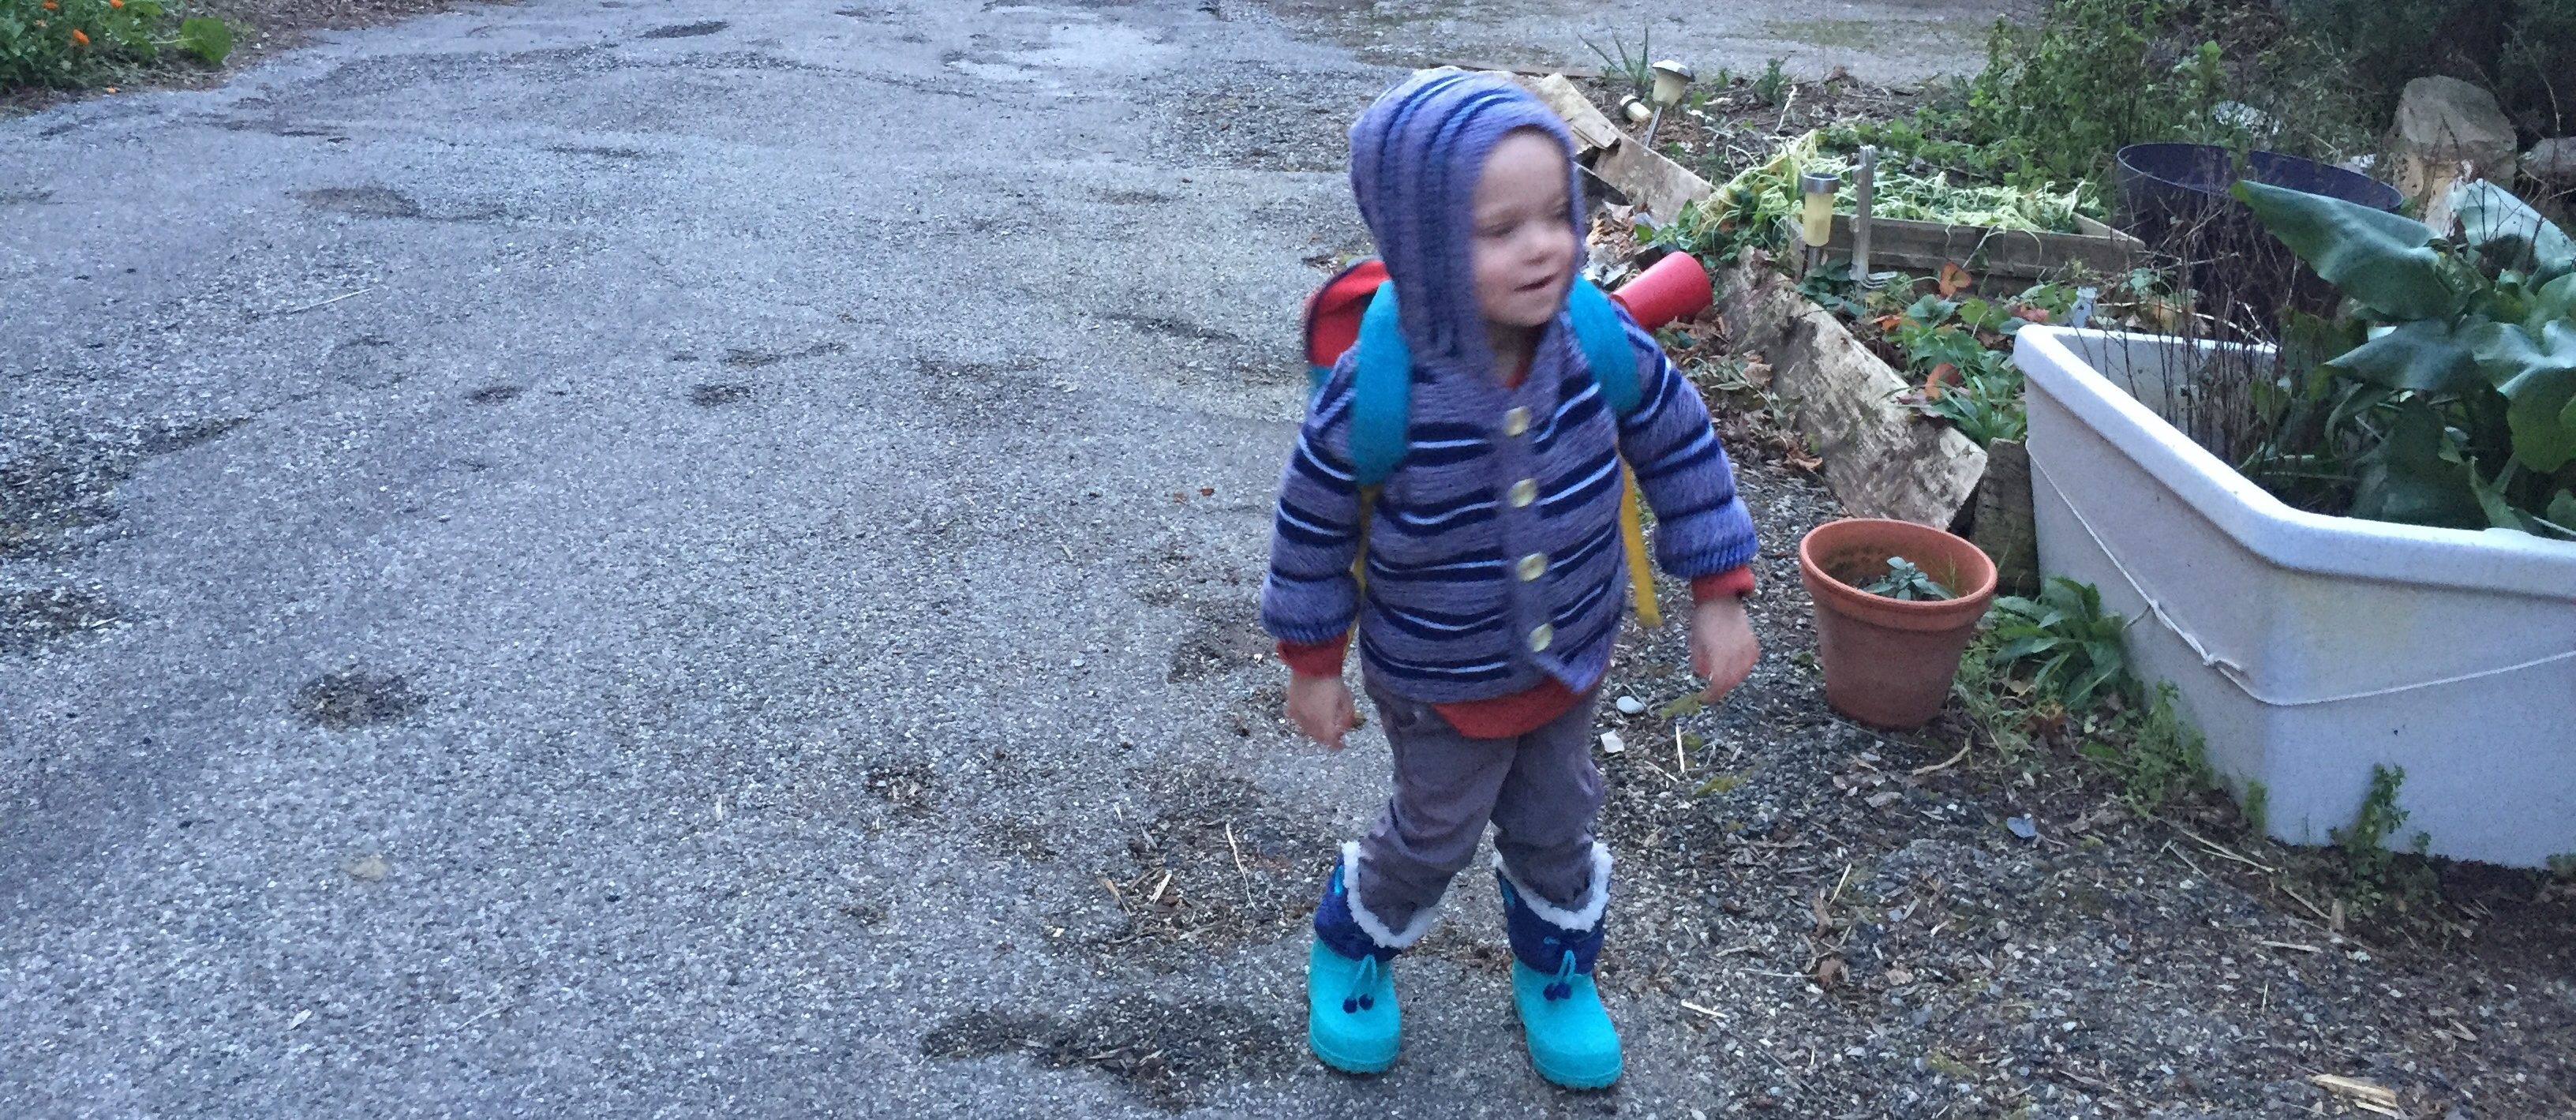 A small boy wearing a cardigan and carrying his rucksack